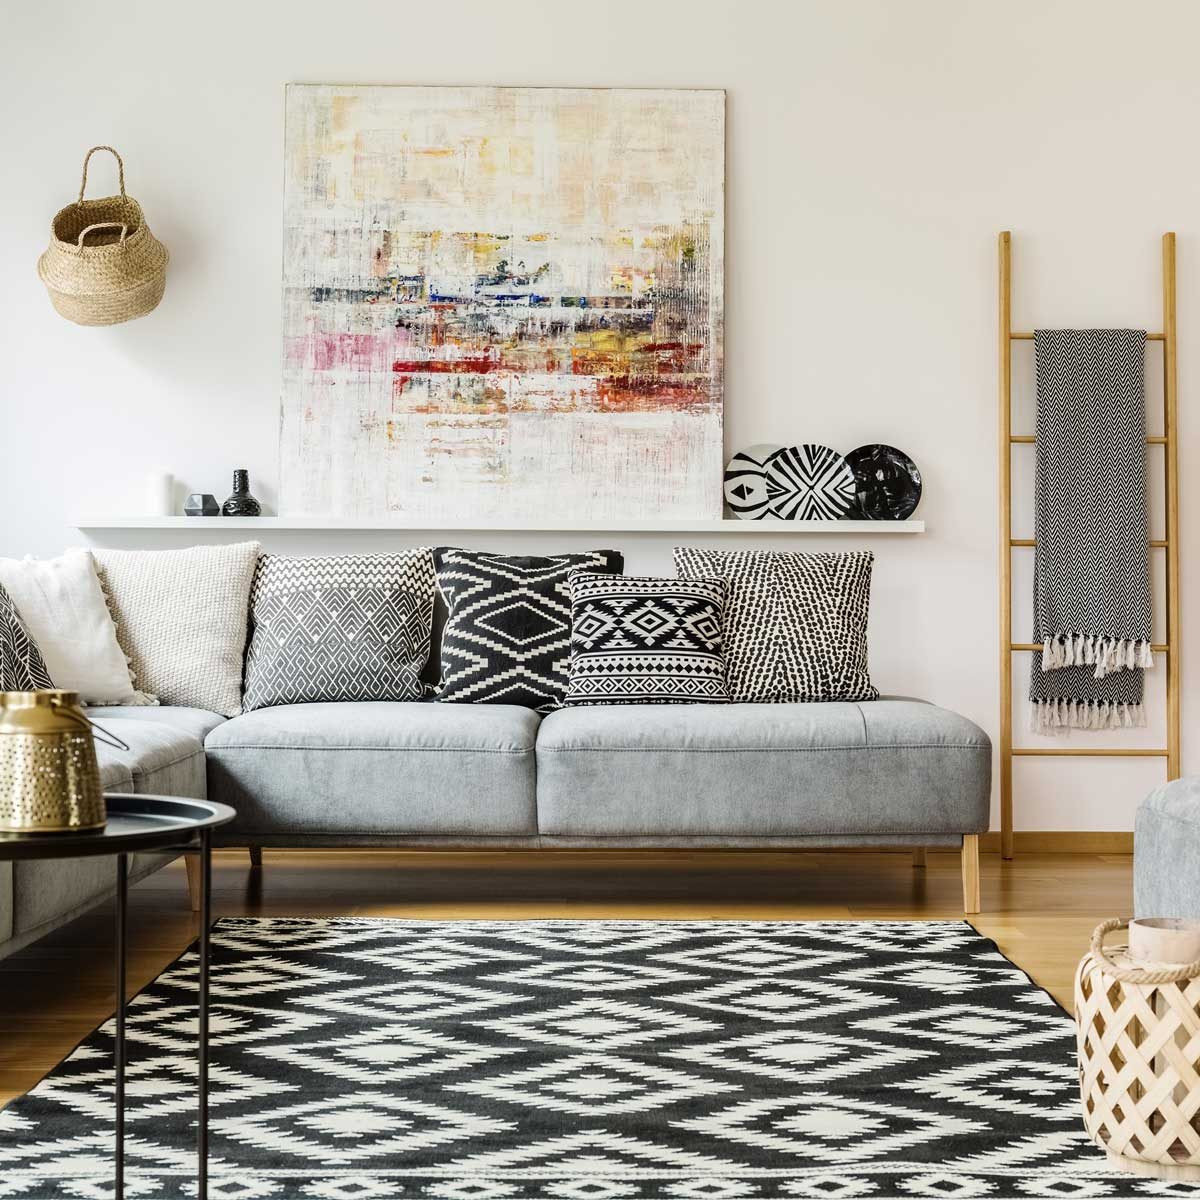 10 Ways to Use Black and White in Home Decor